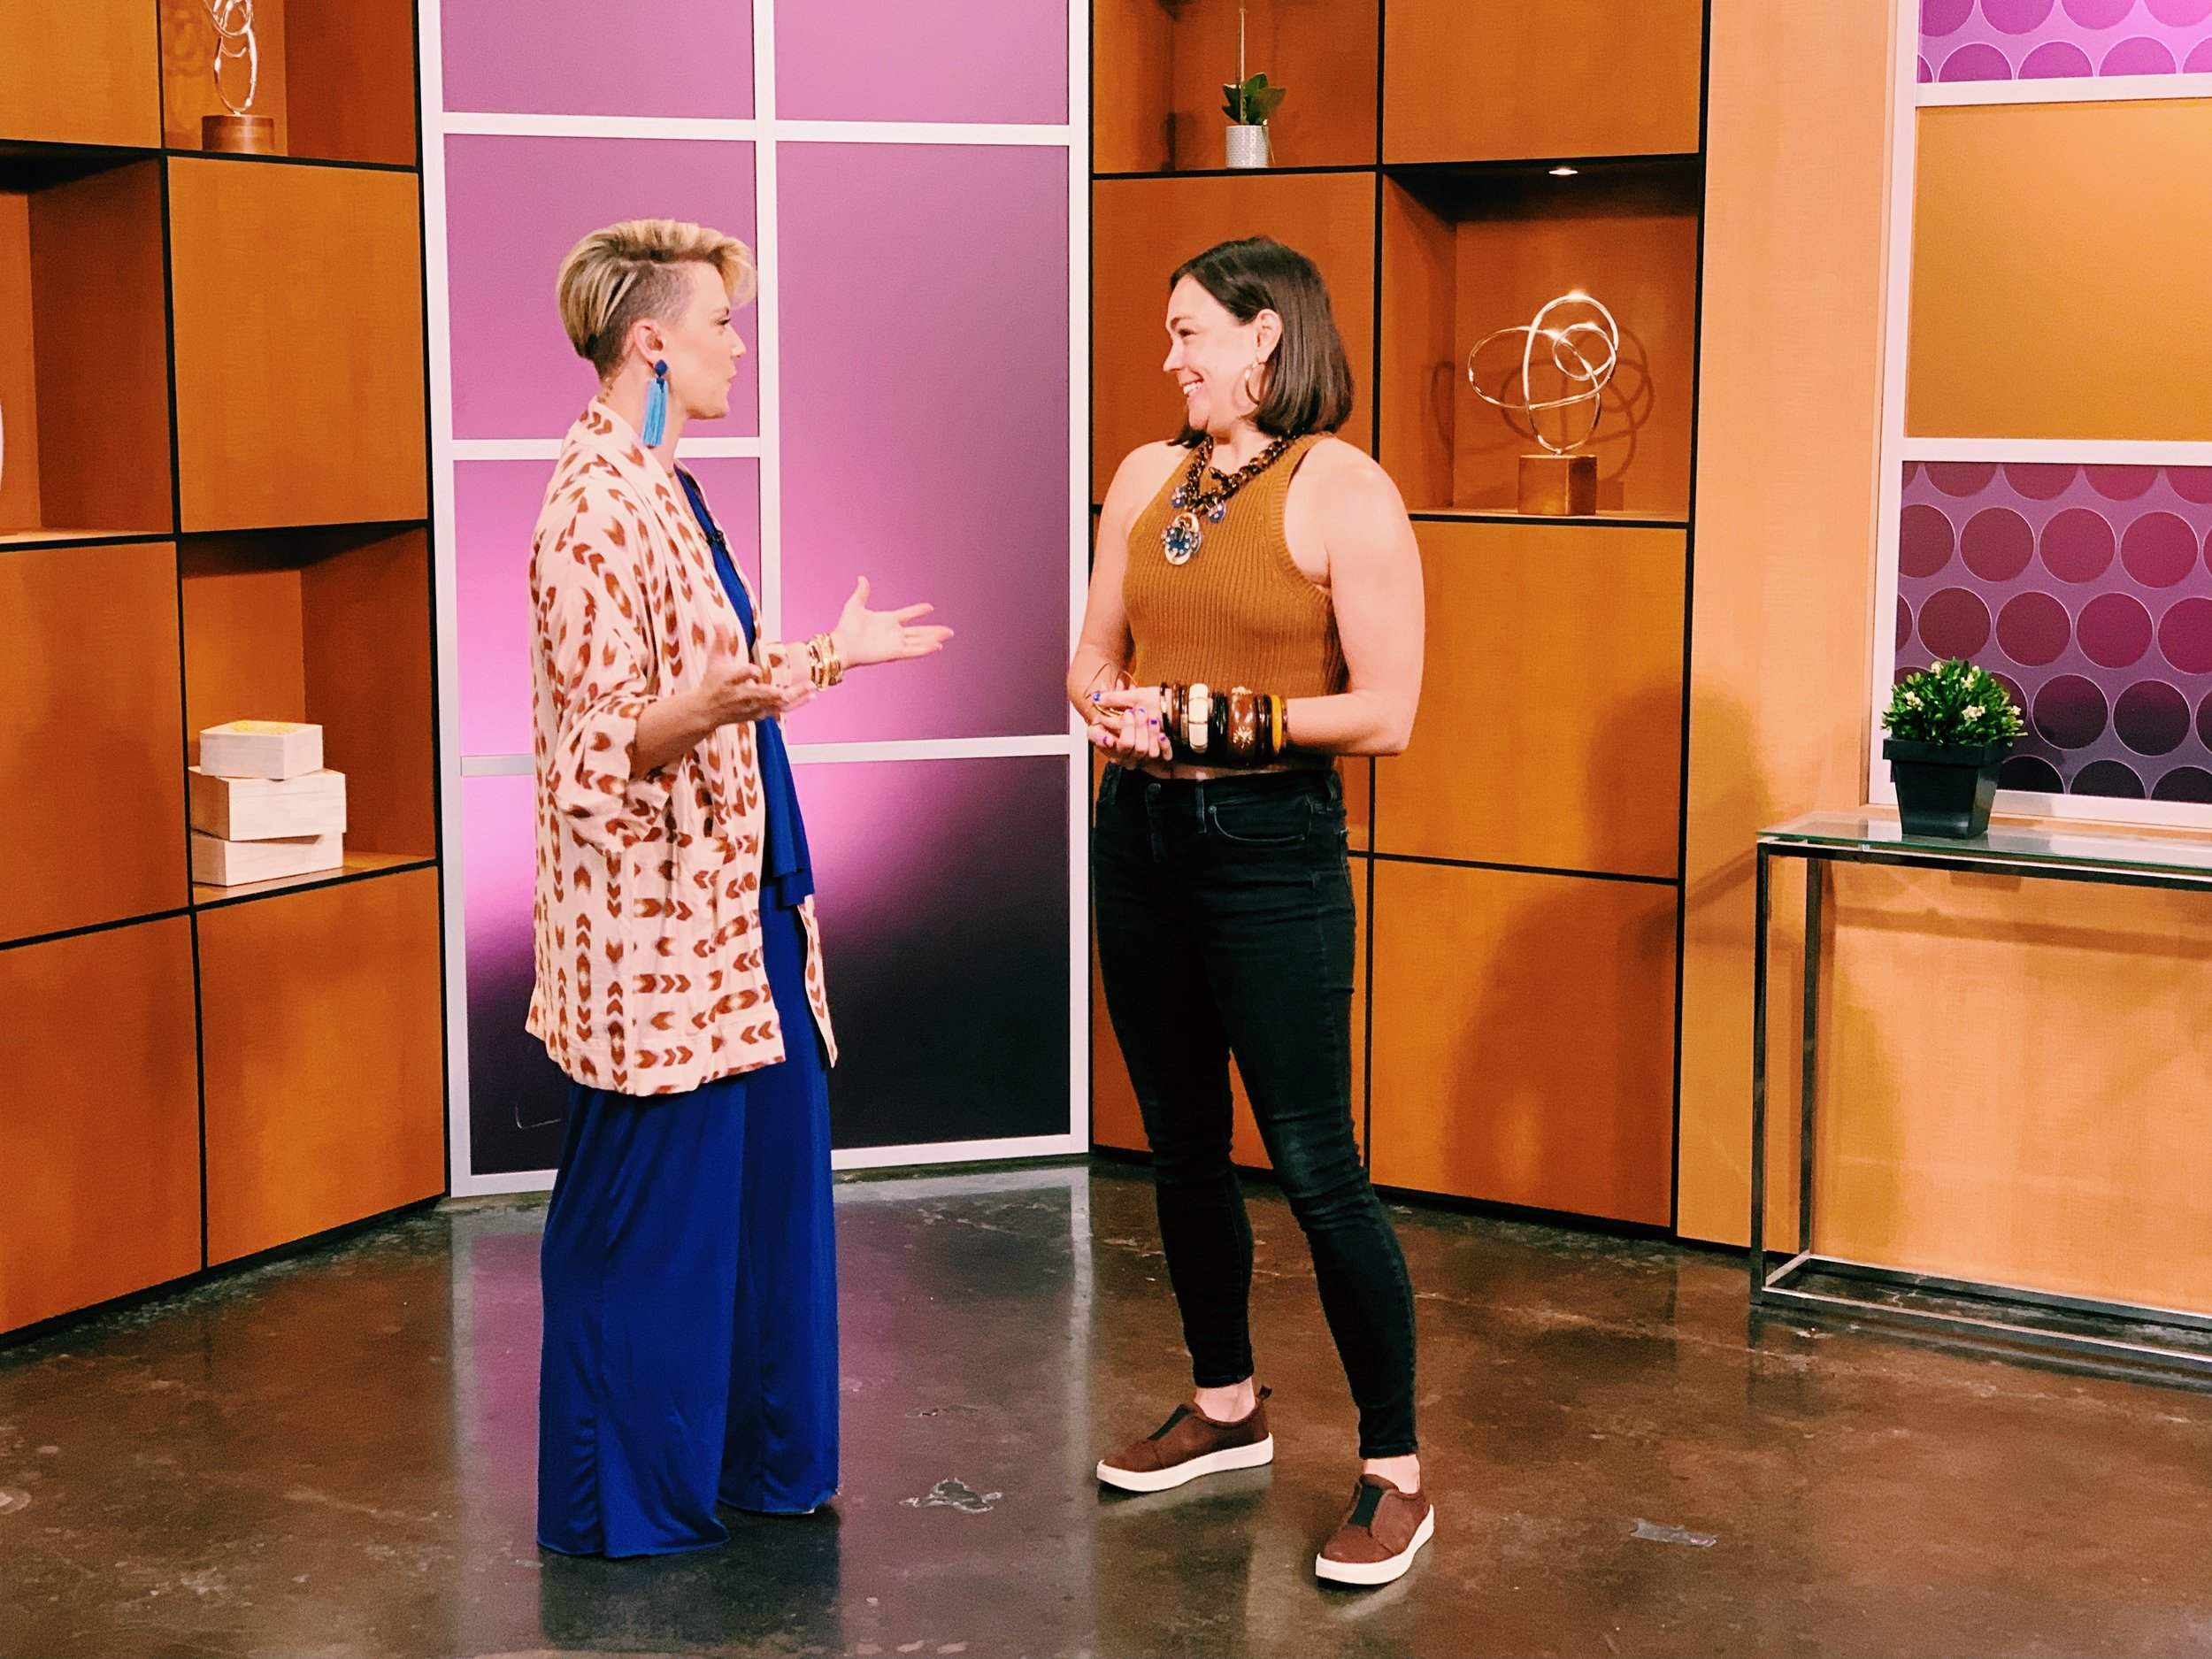 Raquel Greer Gordian and Rosie Newberry chat about how to find your balance points and use them to frame your face.